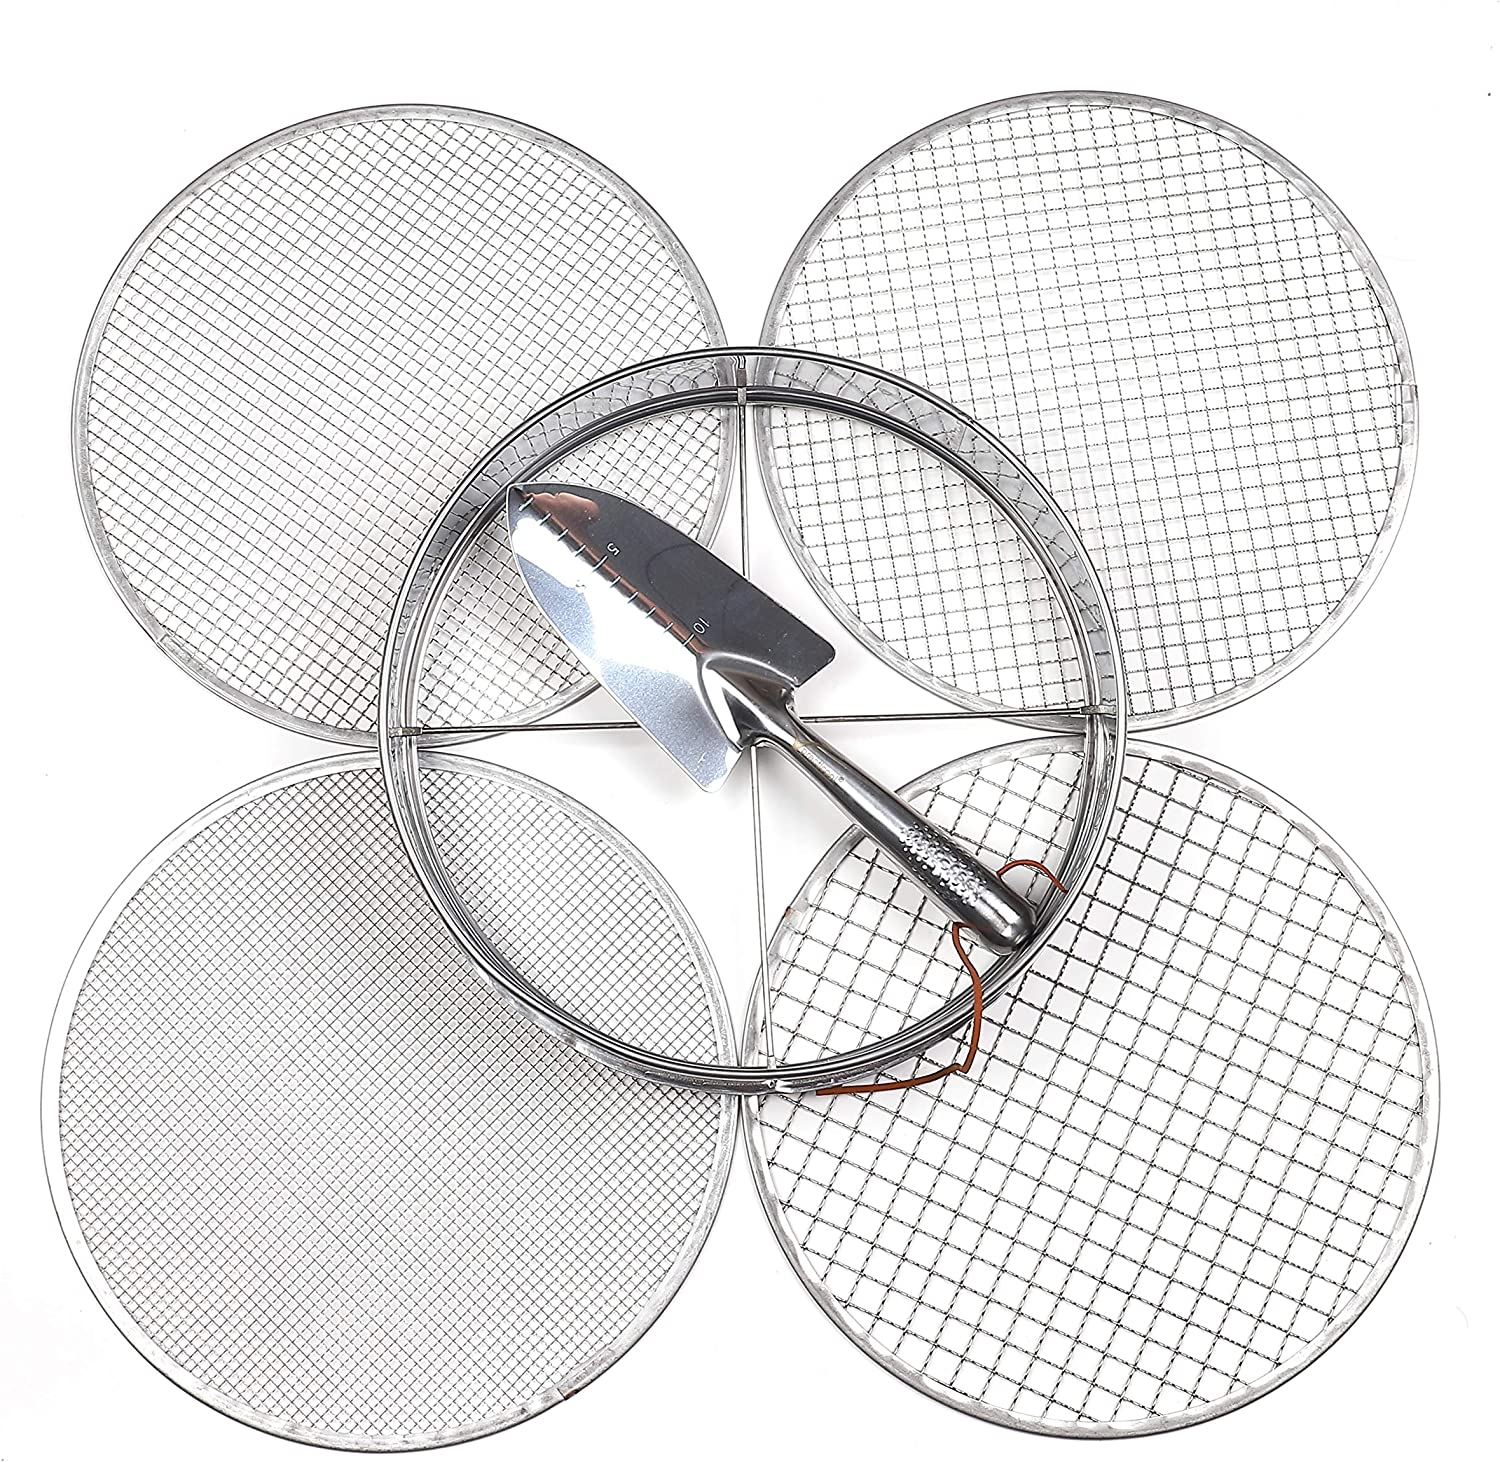 Practicool Garden Potting Mix Sieve - Stainless Steel Riddle - Soil sifting pan - with 4 Interchangeable Filter mesh Sizes - 3,6,9,12 mm and Bonus Spade